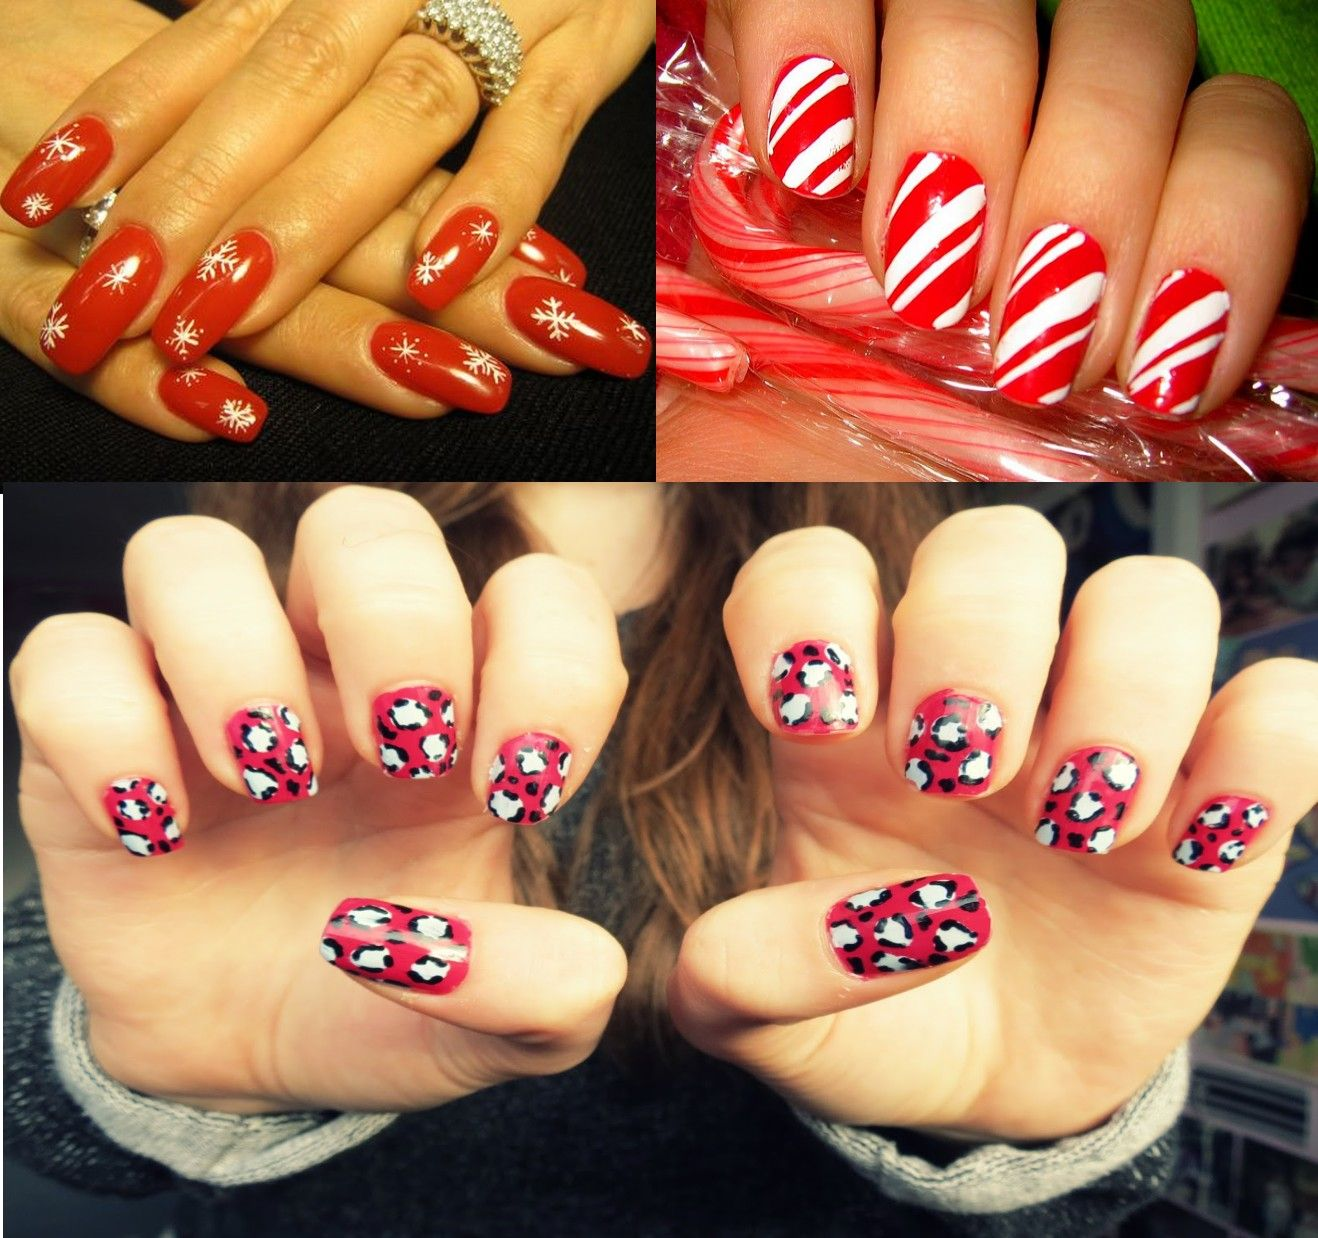 Best Nail Art Designs For Christmaschristmas Cute Nail Art Designs